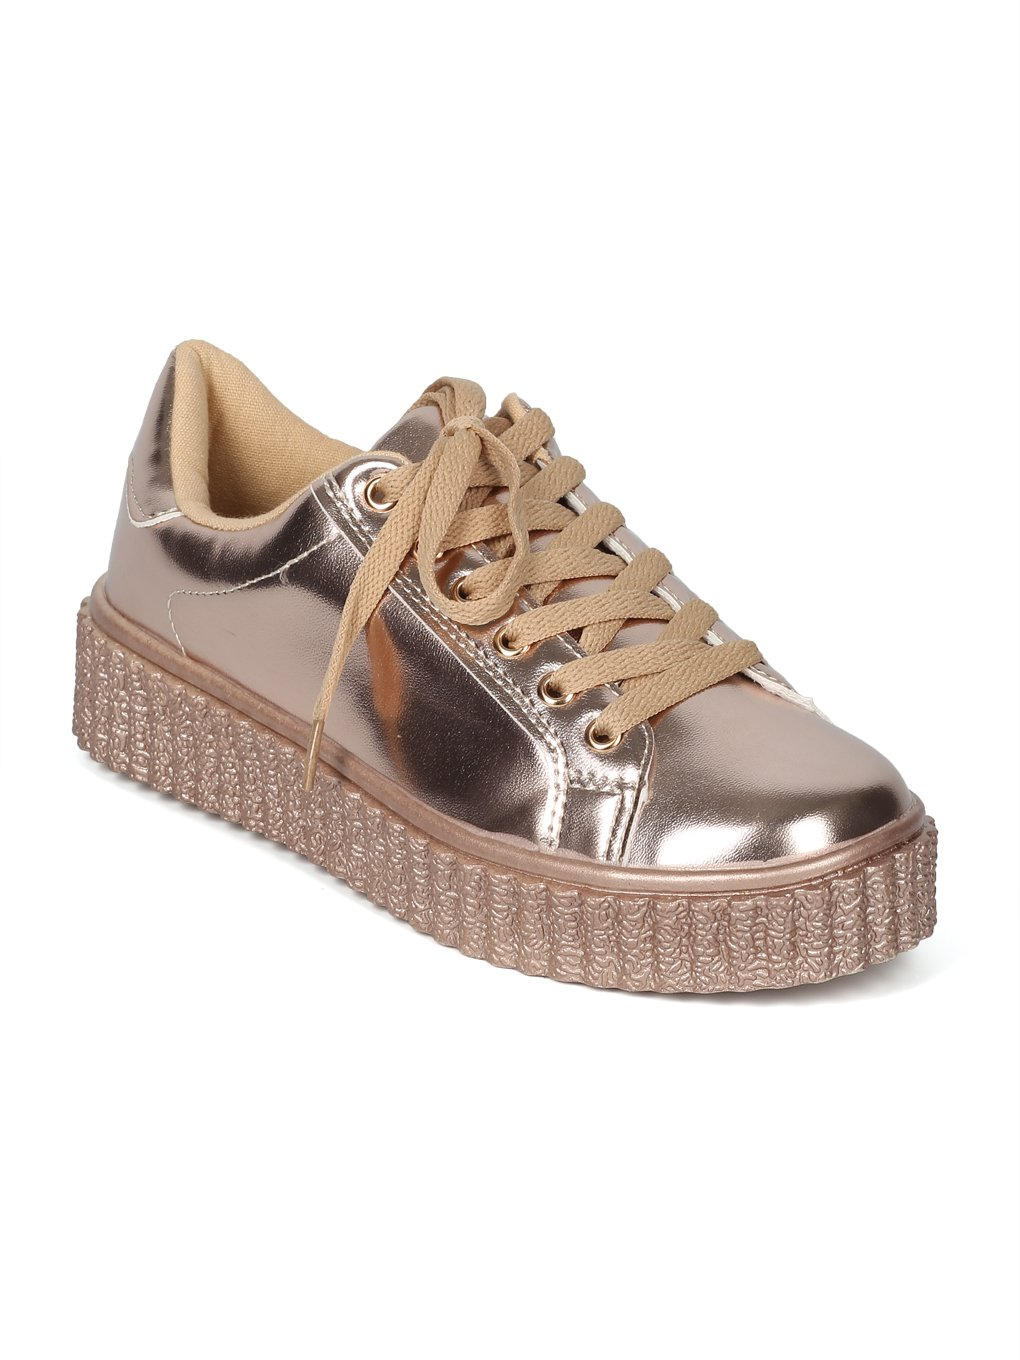 Women Metallic Round Toe Lace up Flatform Creeper Sneaker HK84 by Wild Diva B07F5FPQPC 5.5 B(M) US|Rose Gold Metallic